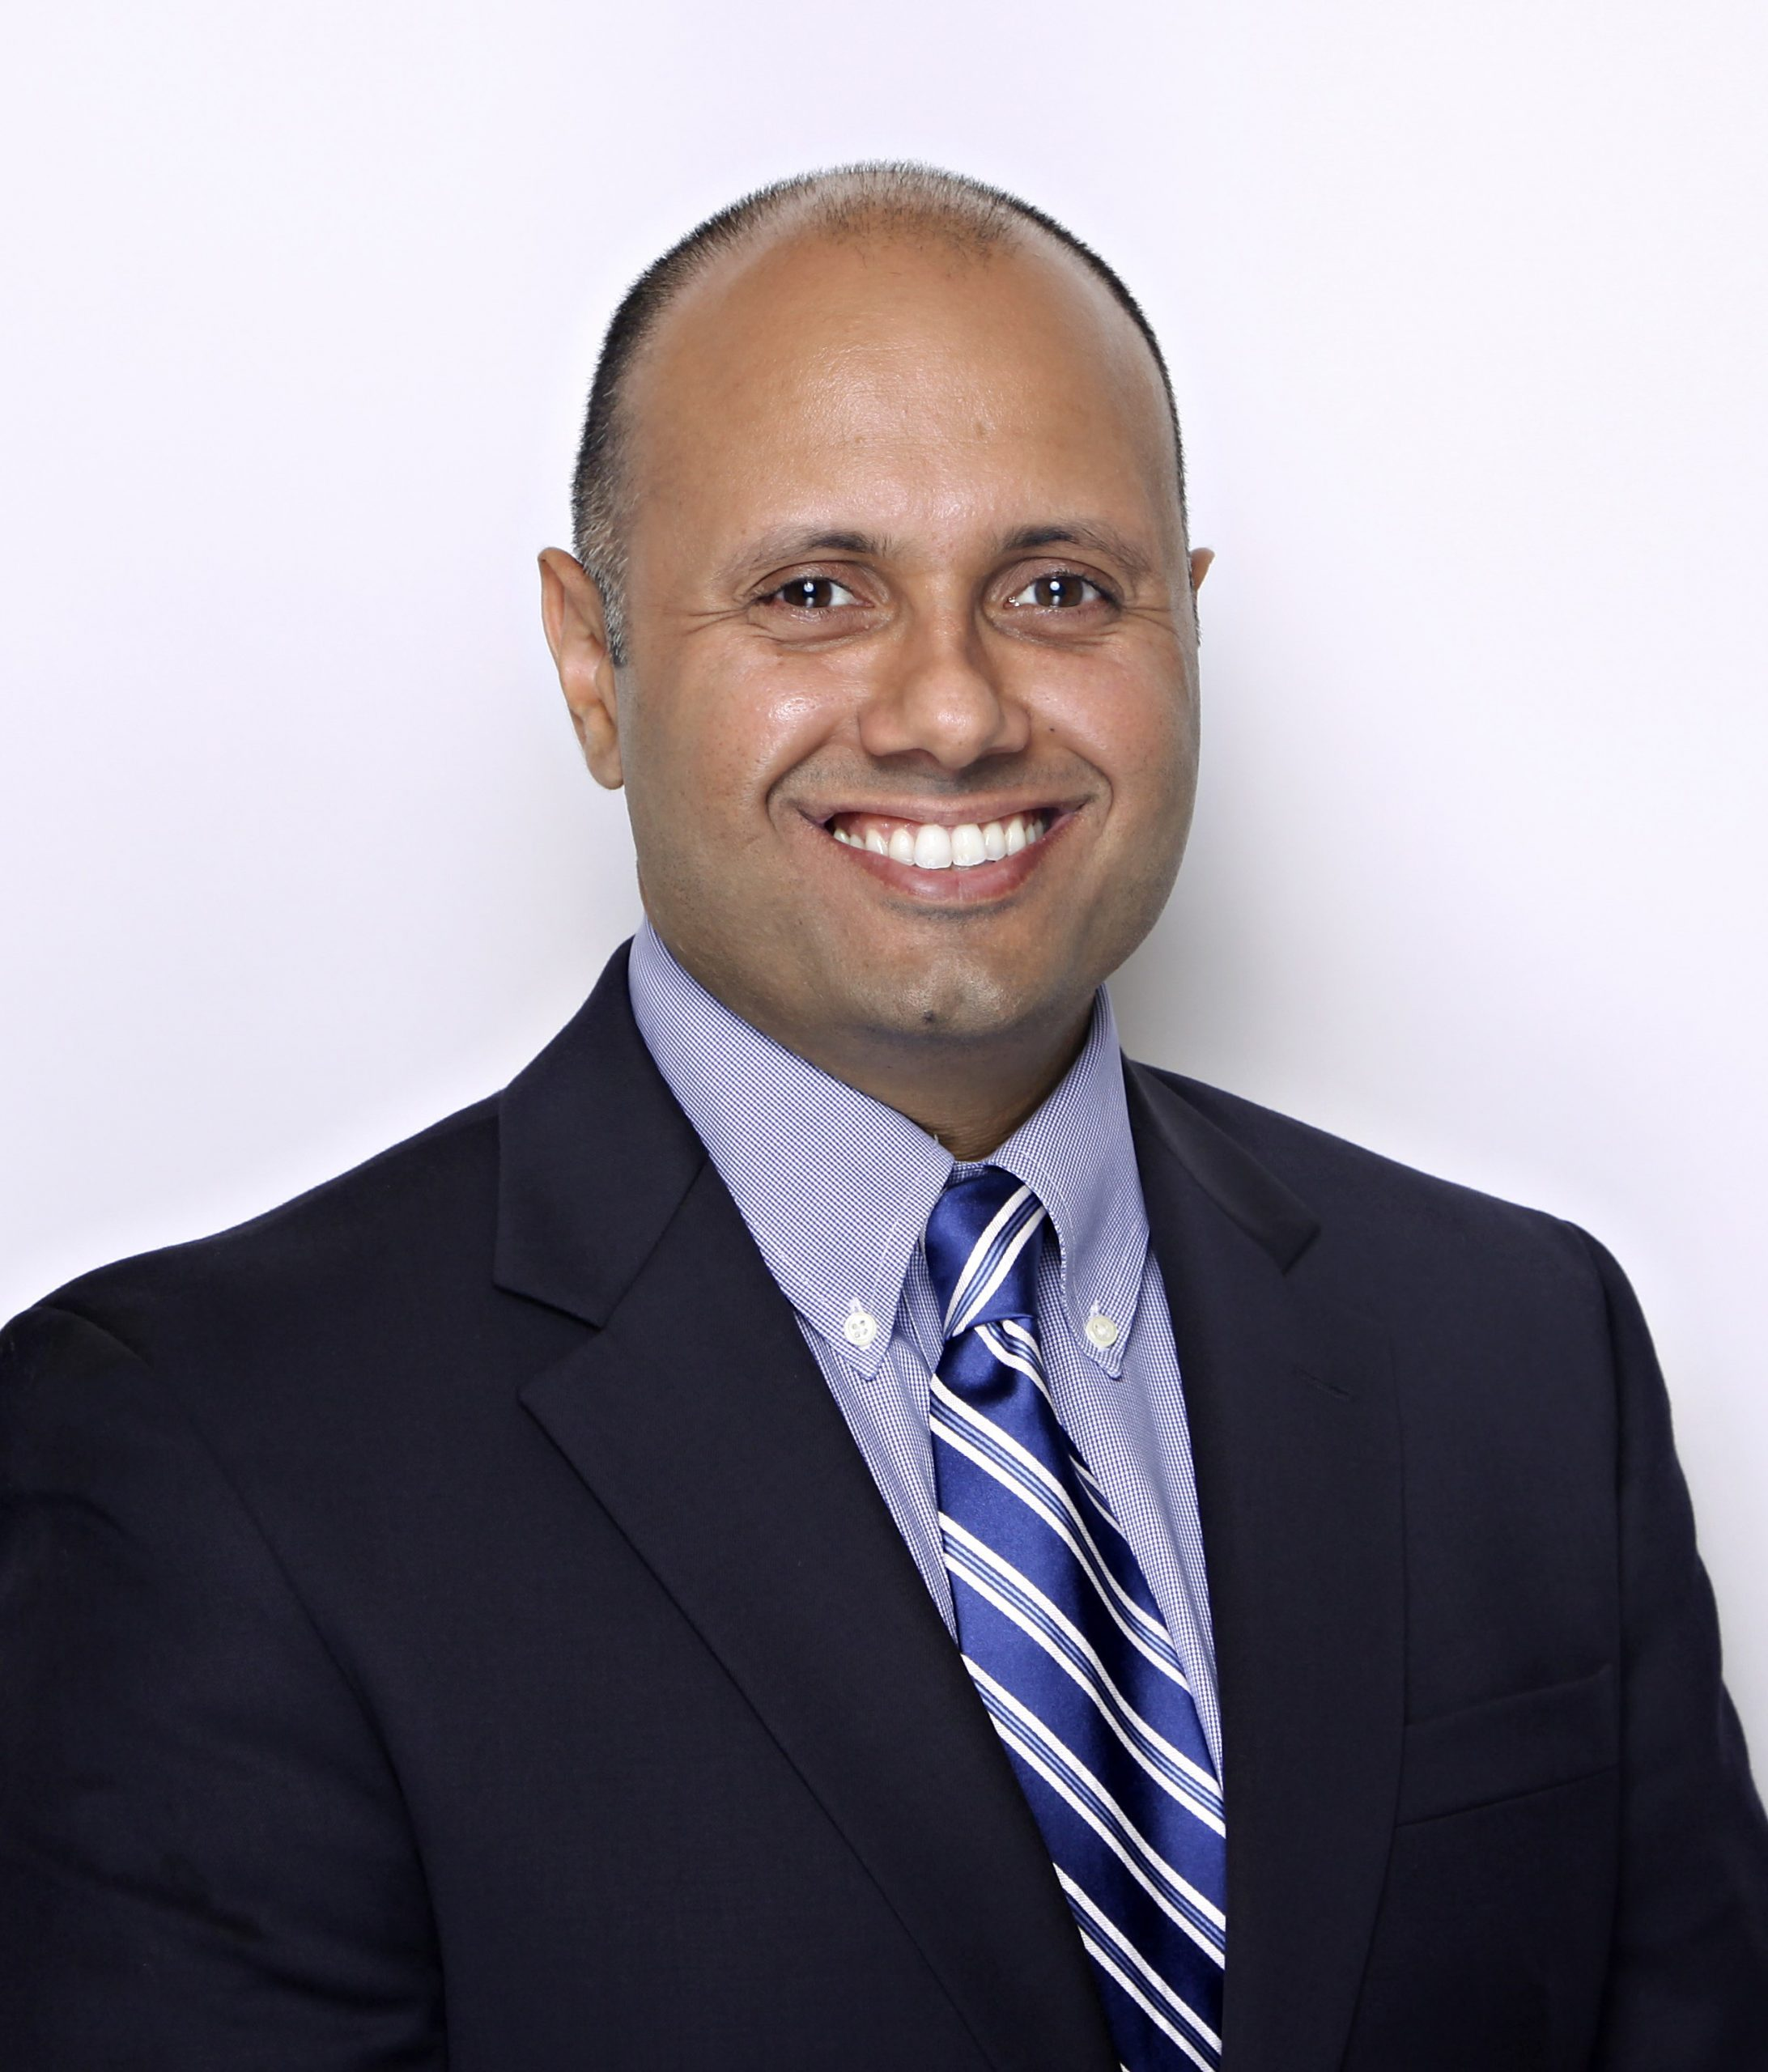 Mohsen Nasir, MD, MBA - An Employed Provider of Memorial Healthcare